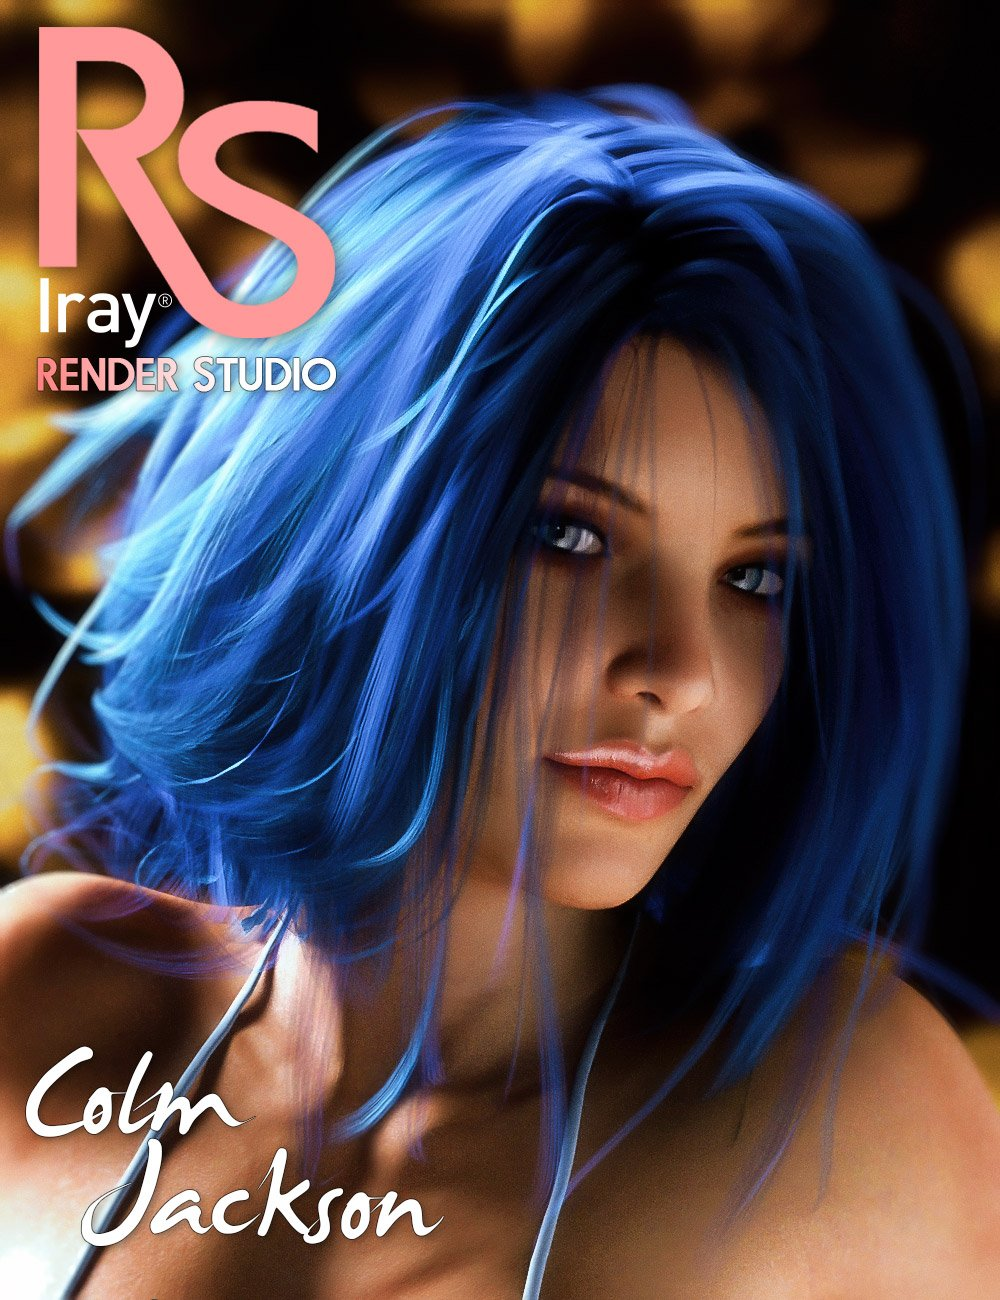 Render Studio Iray by: Colm Jackson, 3D Models by Daz 3D